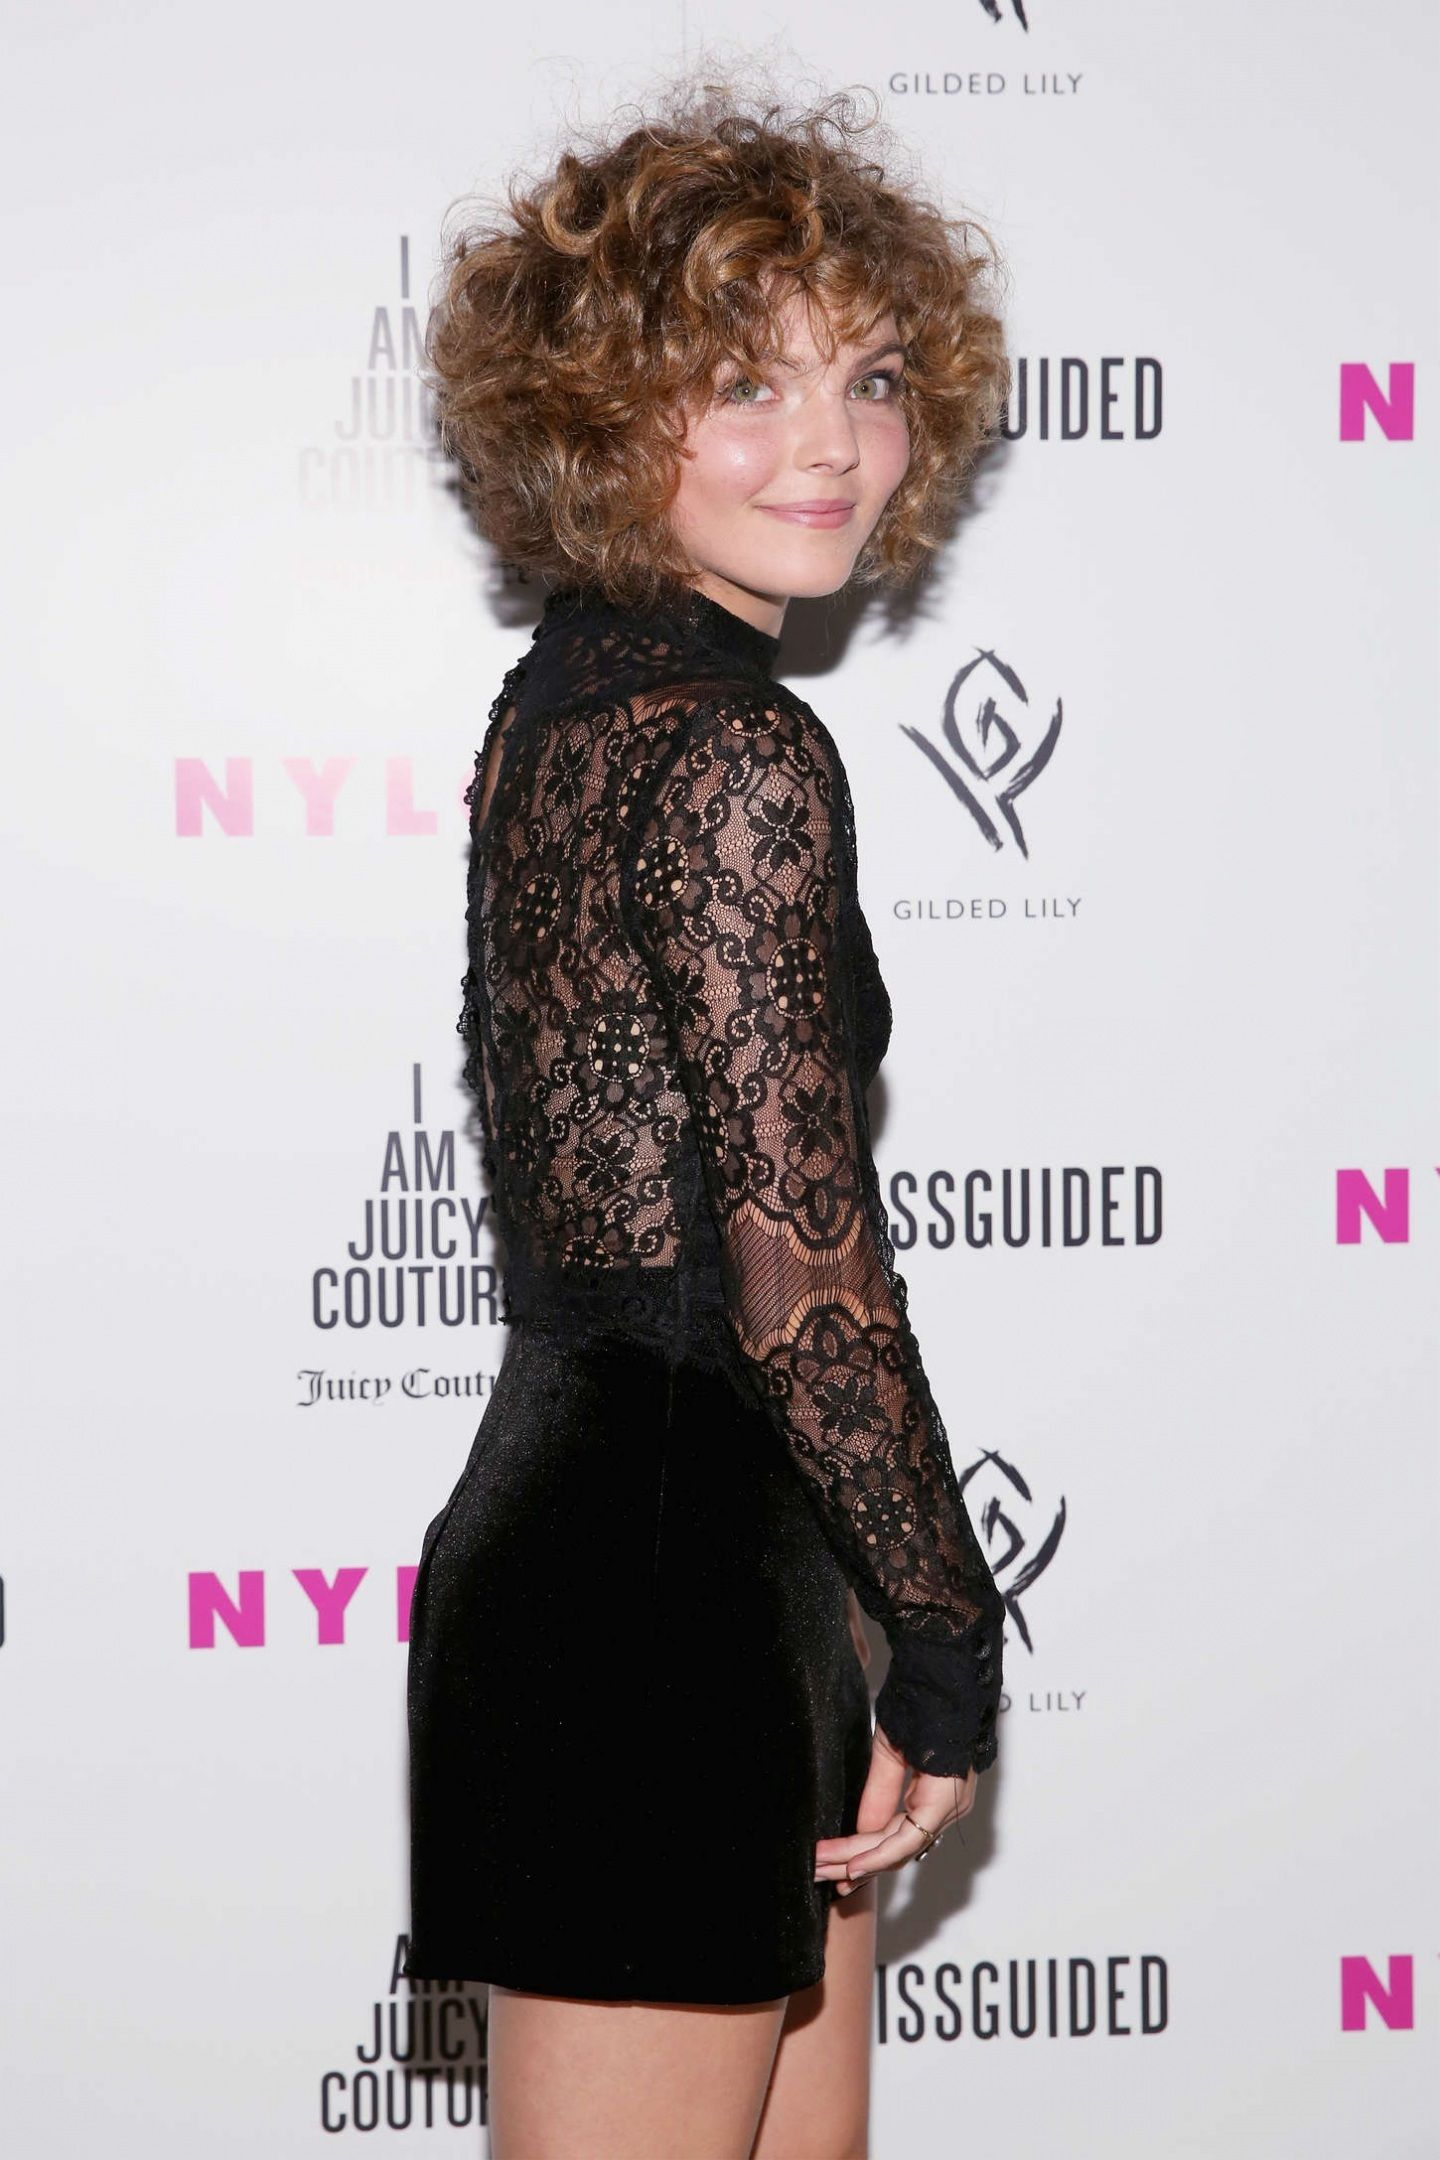 Paparazzi Celebrites Camren Bicondova naked photo 2017